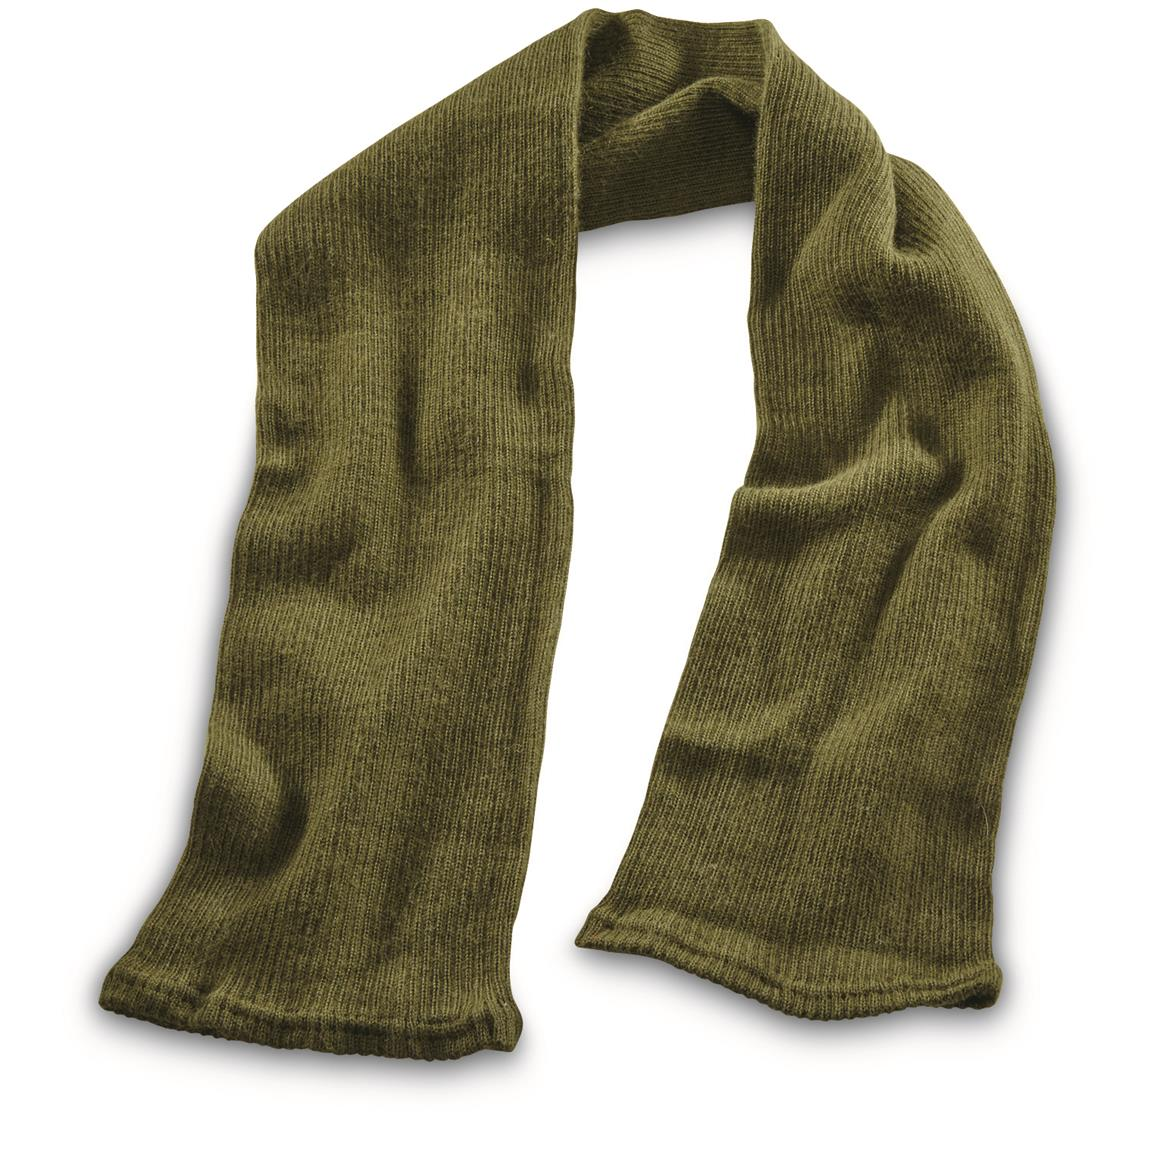 Can be worn as wrap-around scarf